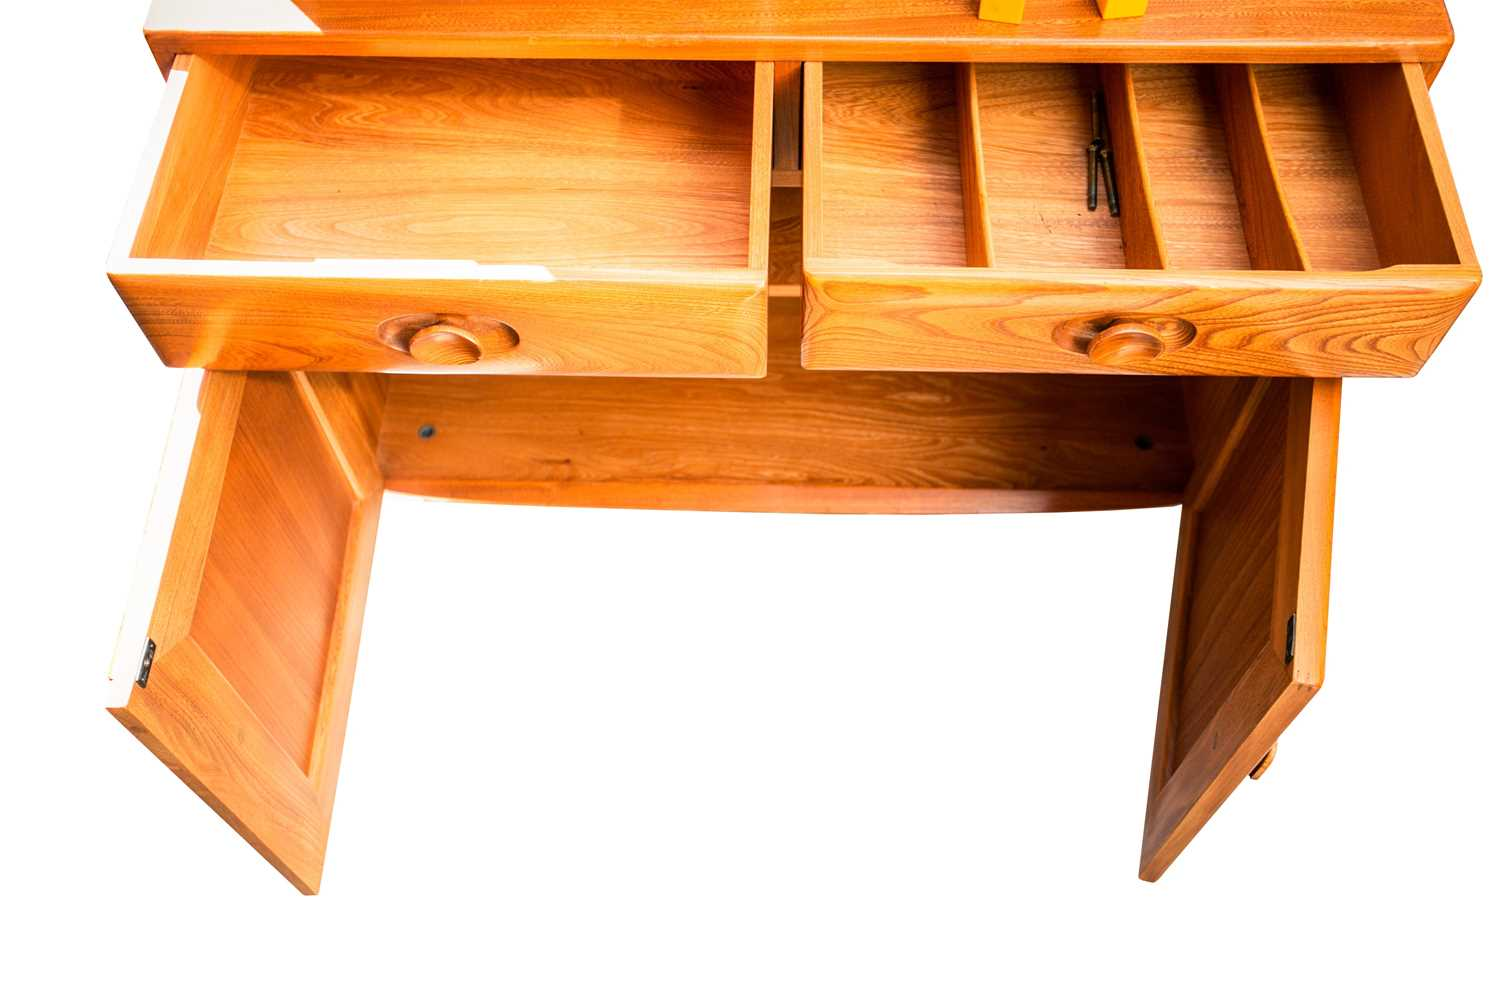 An Ercol golden dawn light elm two-section display cupboard. With two glazed doors above a base with - Image 3 of 3